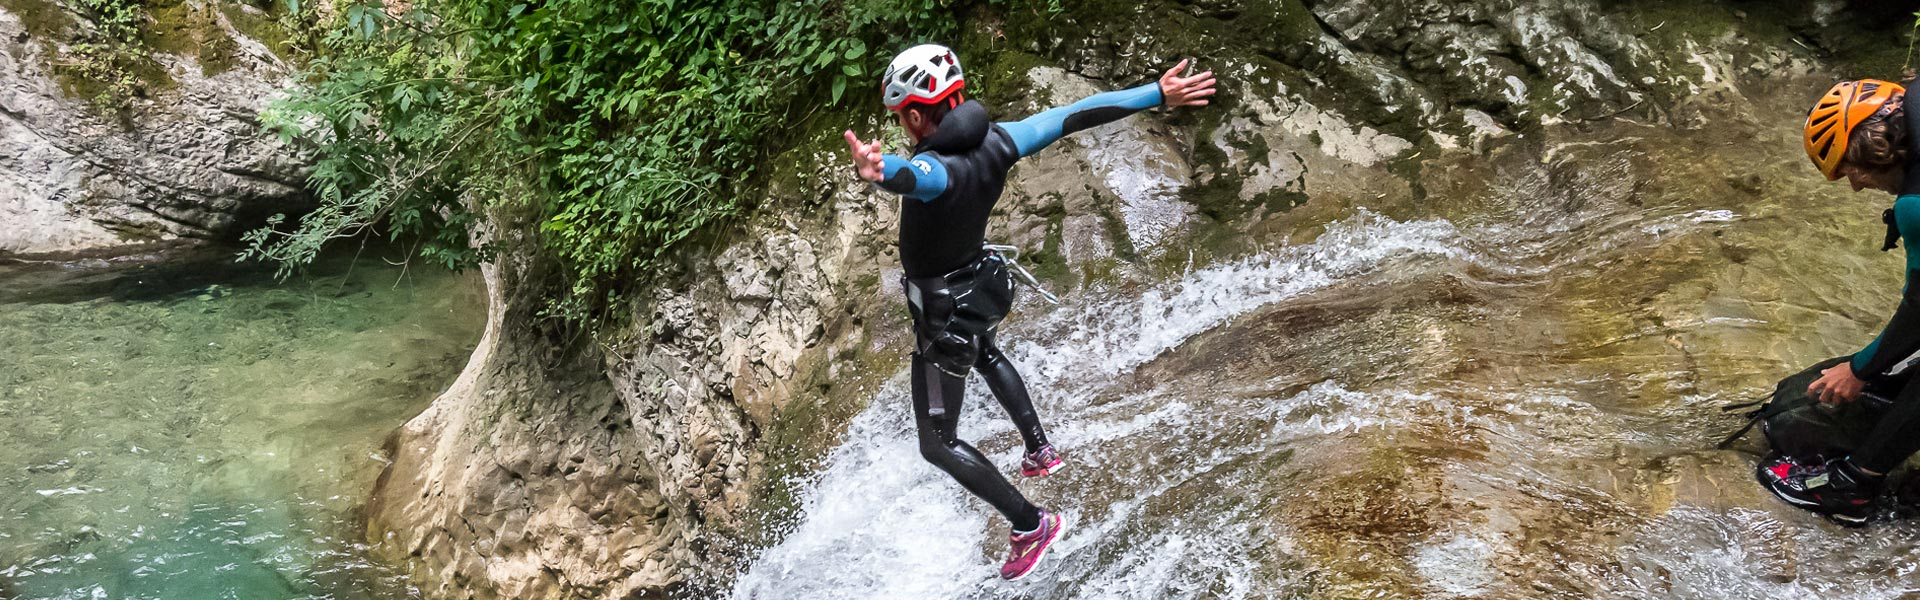 Vertic'O, canyoning Isere